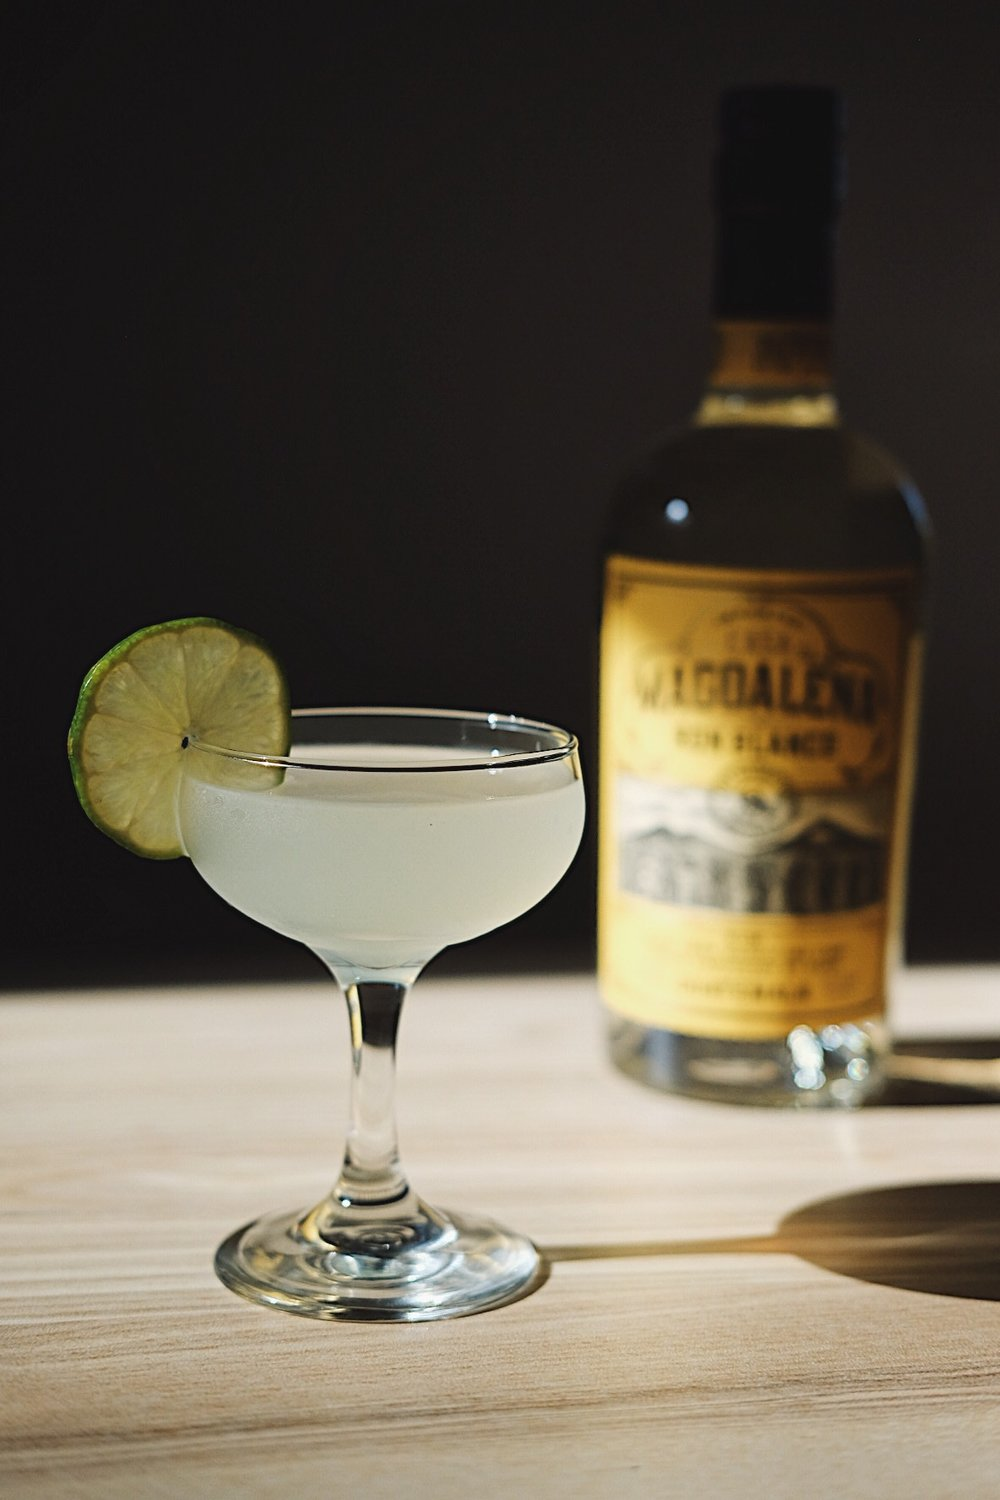 ingredients: - 2 oz your choice of rum3/4 oz fresh lime juice1/2 oz simple syrup